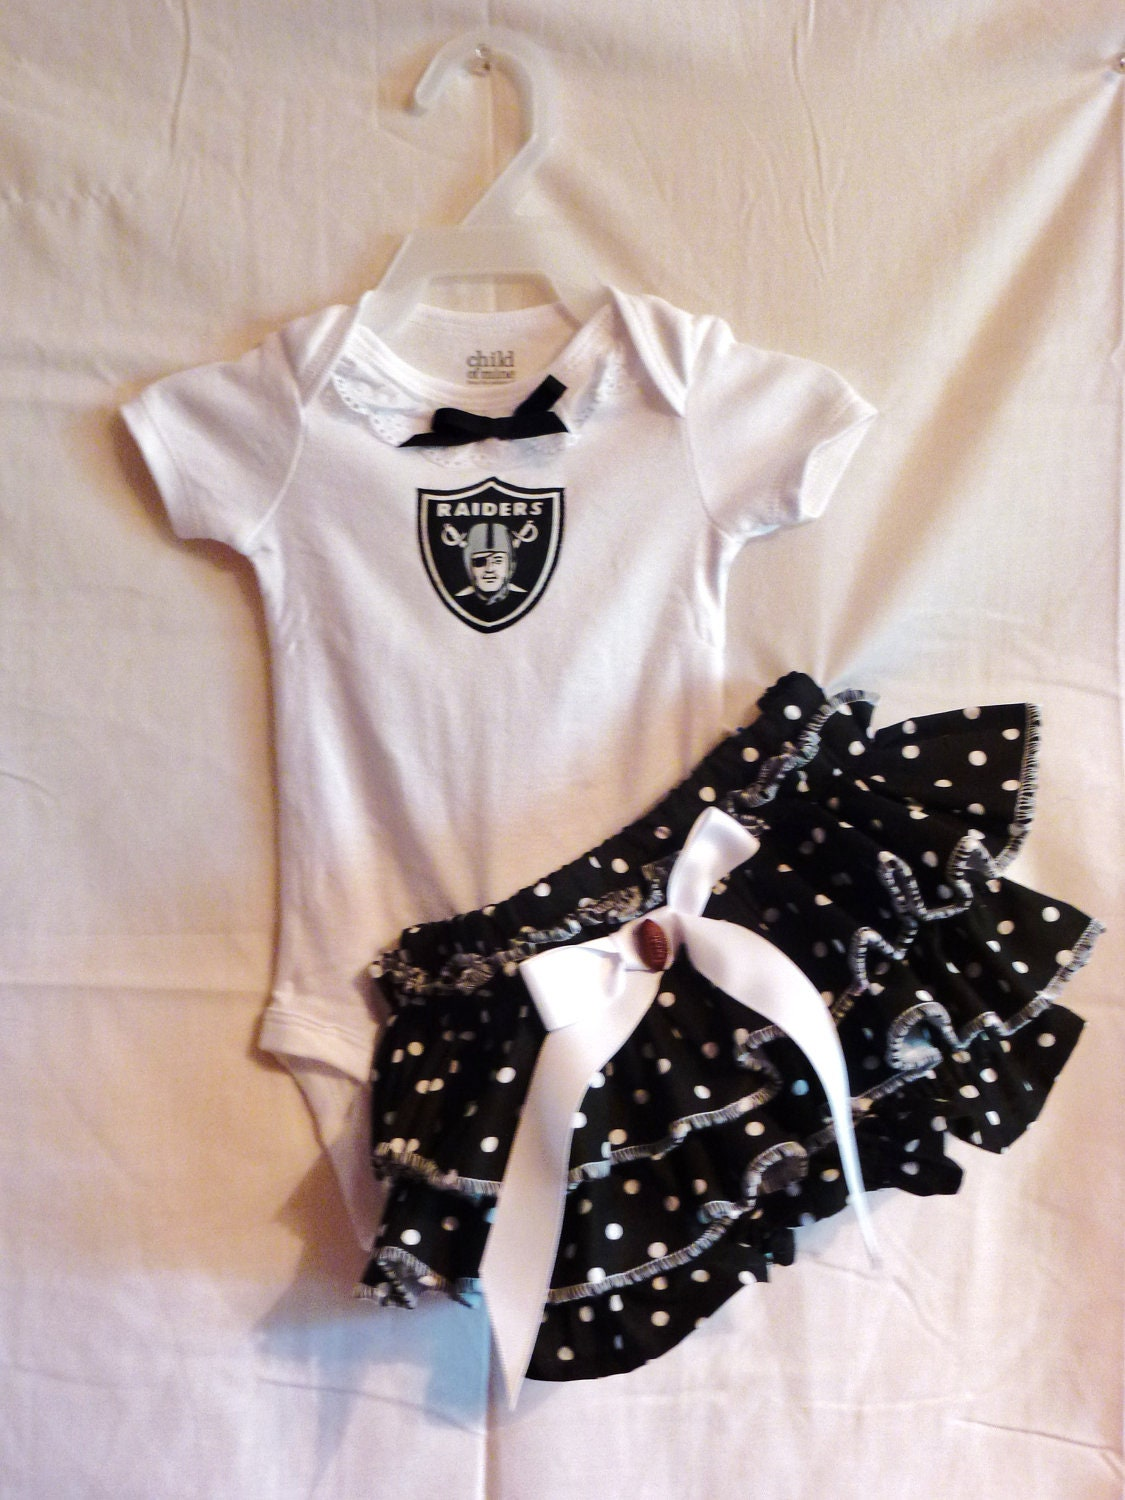 Oakland Raider Baby Clothes Submited